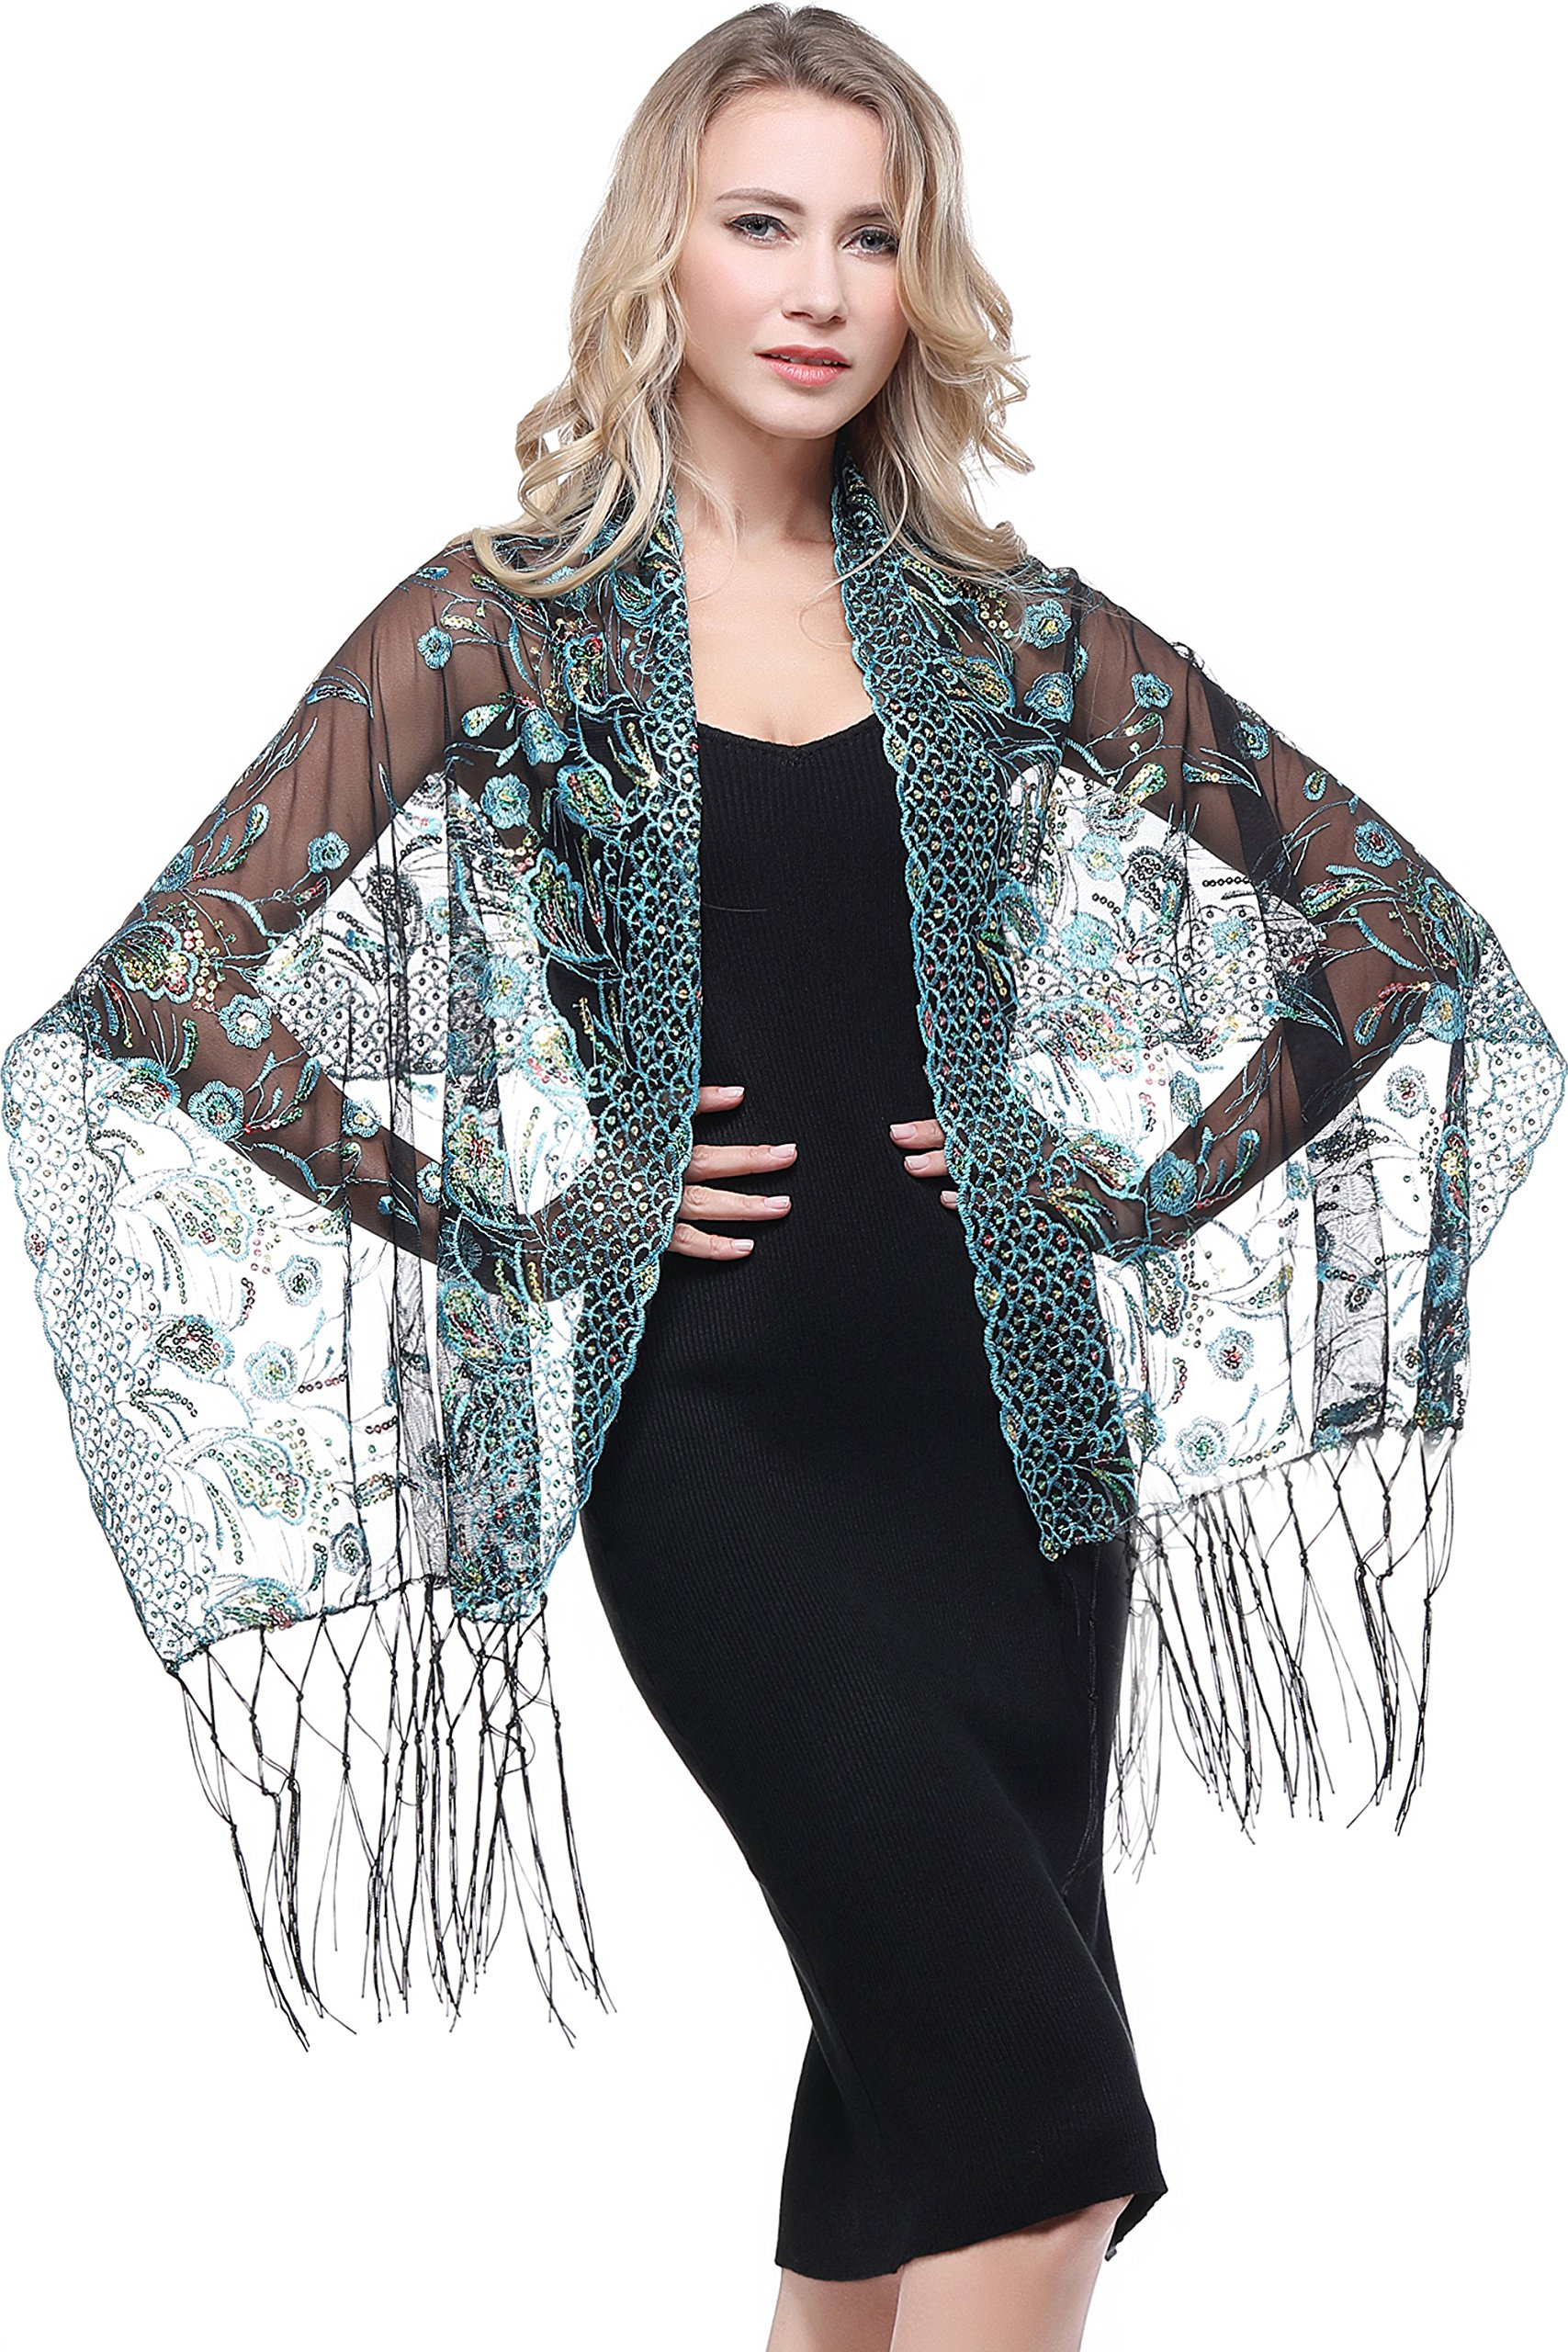 BABEYOND 1920s Sequined Shawl Wraps Peacock Embroidery Evening Cape Pashmina Shawl Wedding Bridal Shawl Scarf